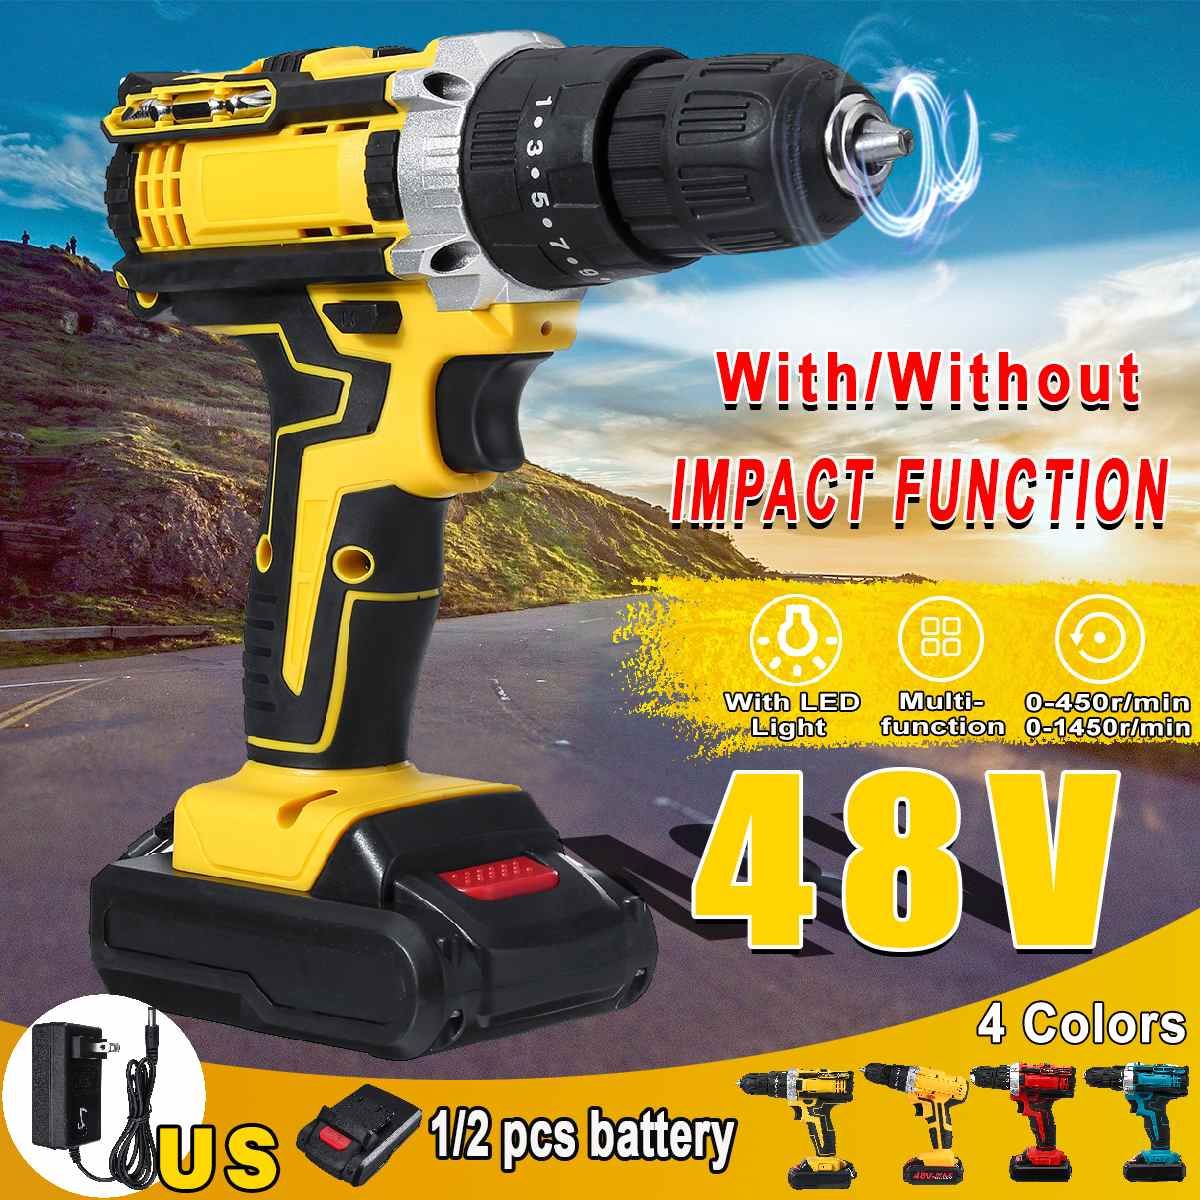 48V 25 Torque 3 Speed Cordless Impact Drill Electric Screwdriver Mini Wireless Power Driver 13000mAh With 2 Lithium-Ion Battery